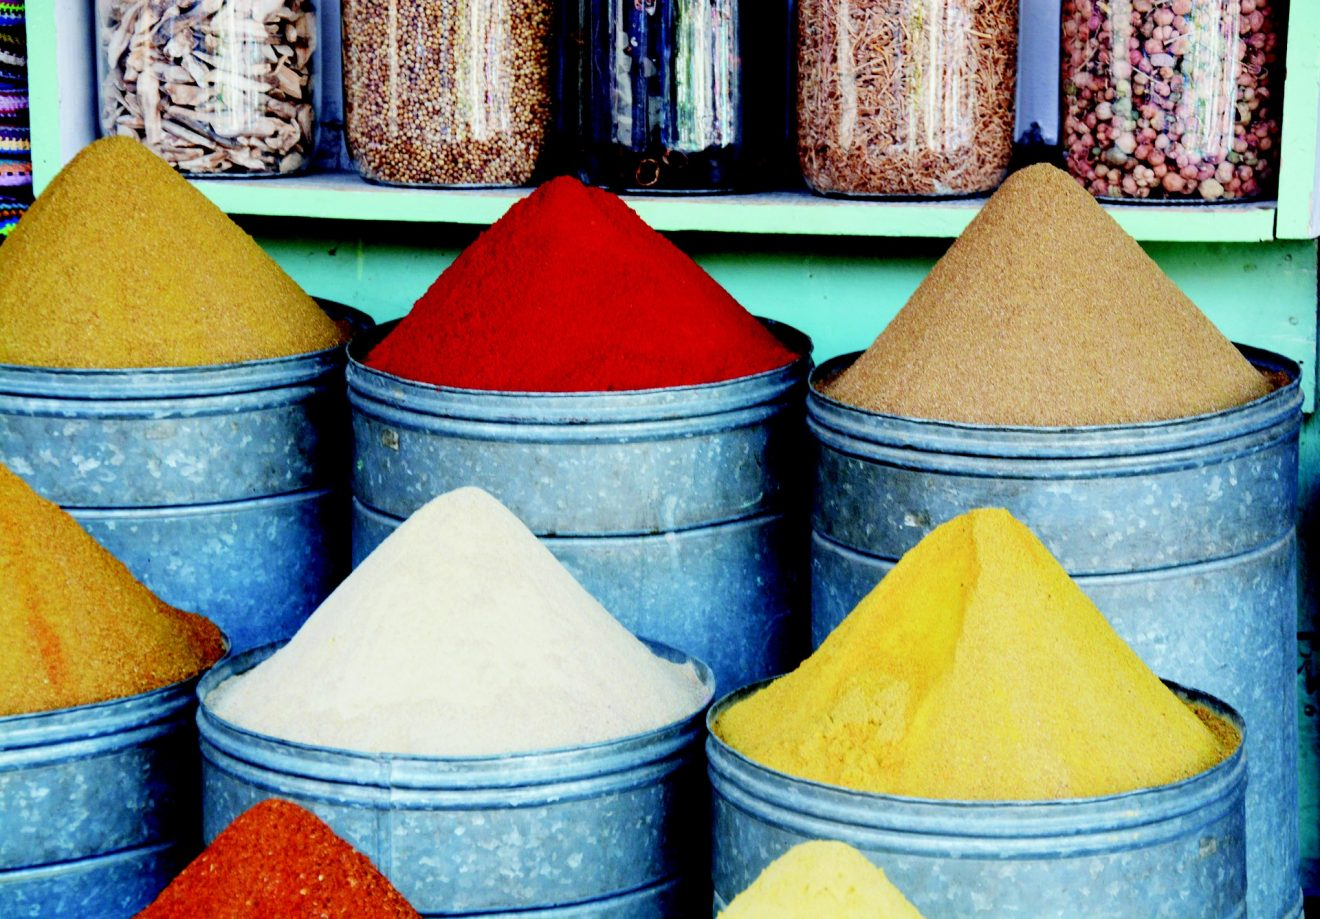 spices-1080544_1920